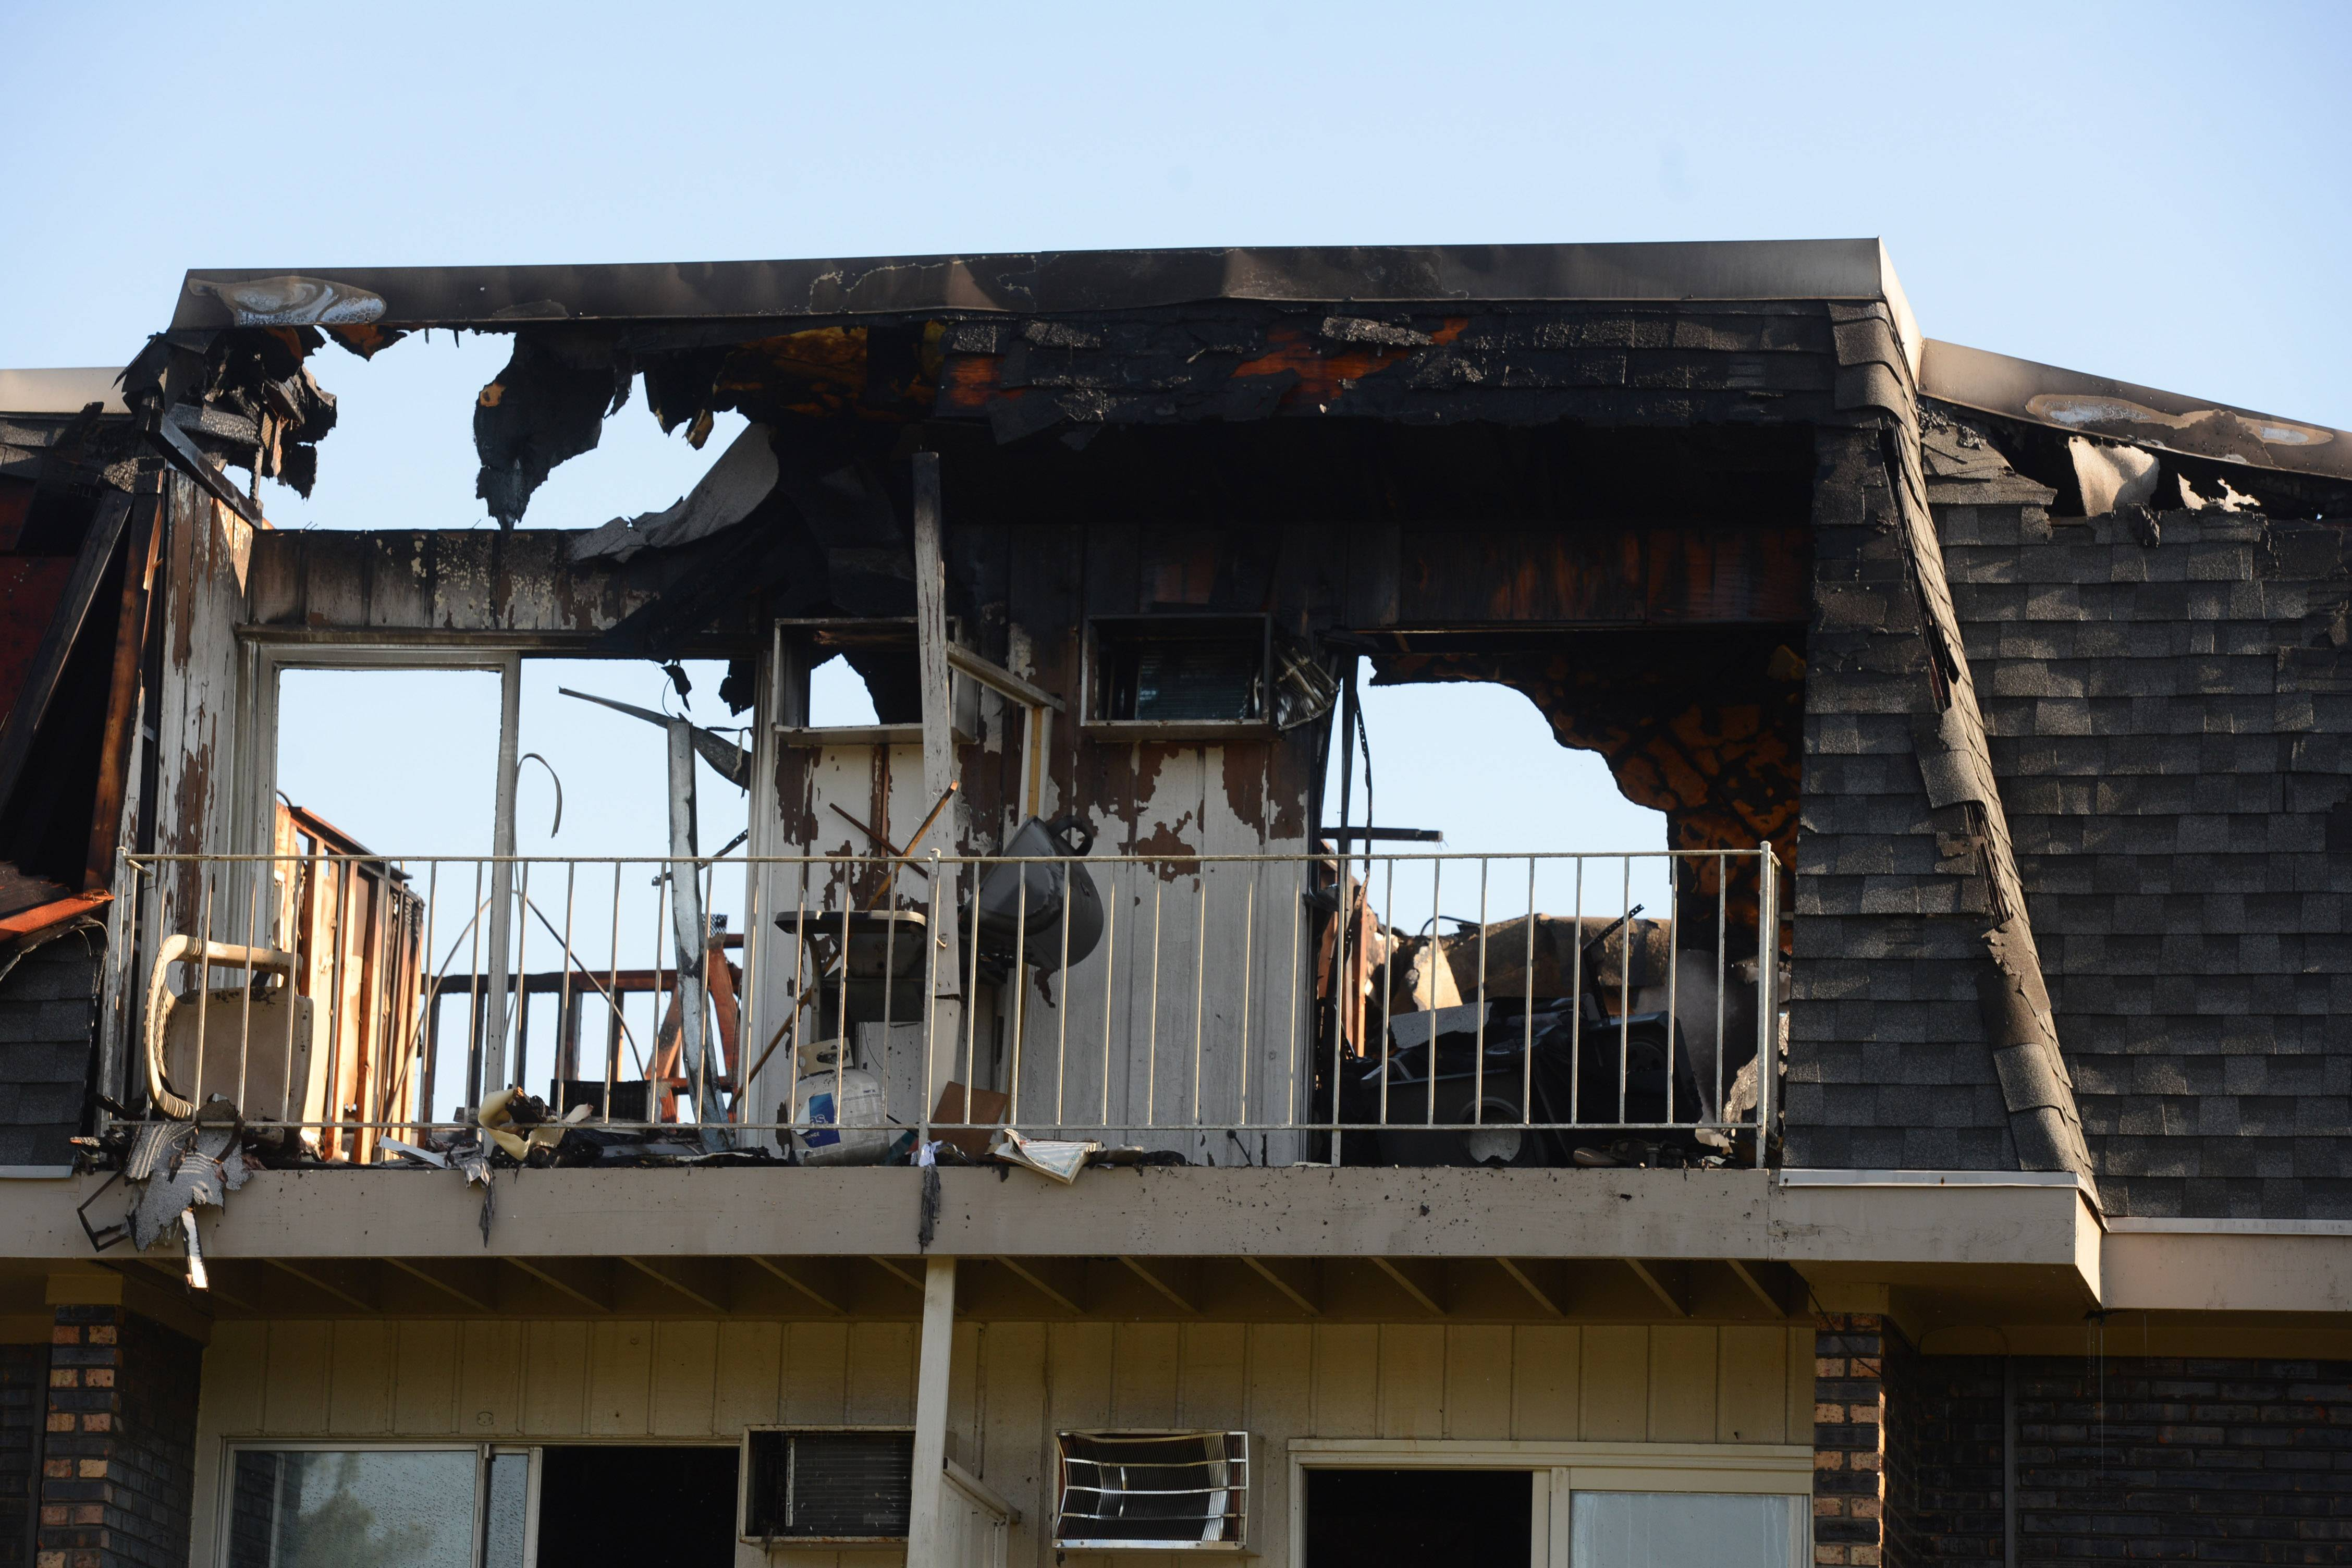 Residents fear 'irreplaceable losses' after devastating fire